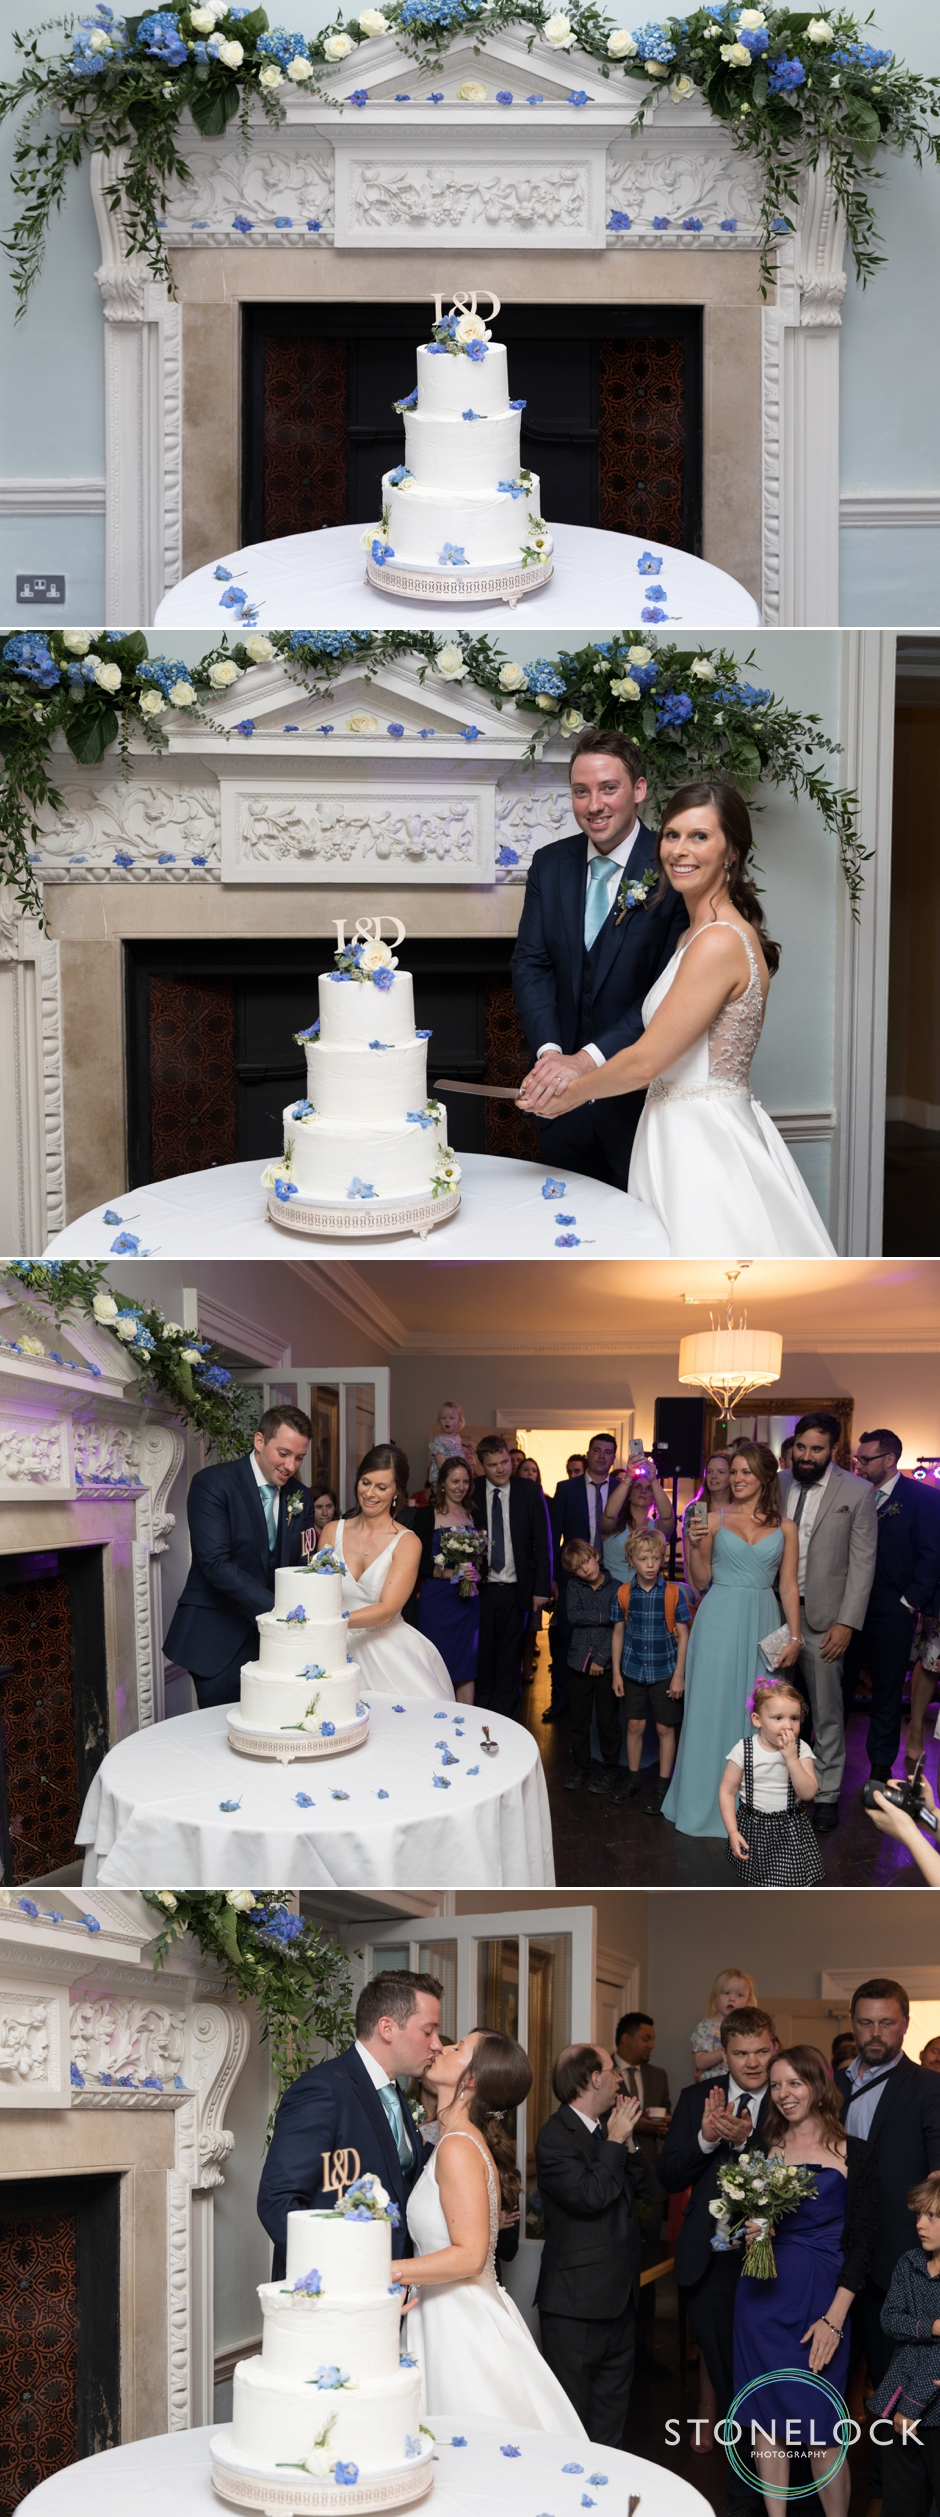 Bride & Groom cut the wedding cake at Morden Hall Weddings